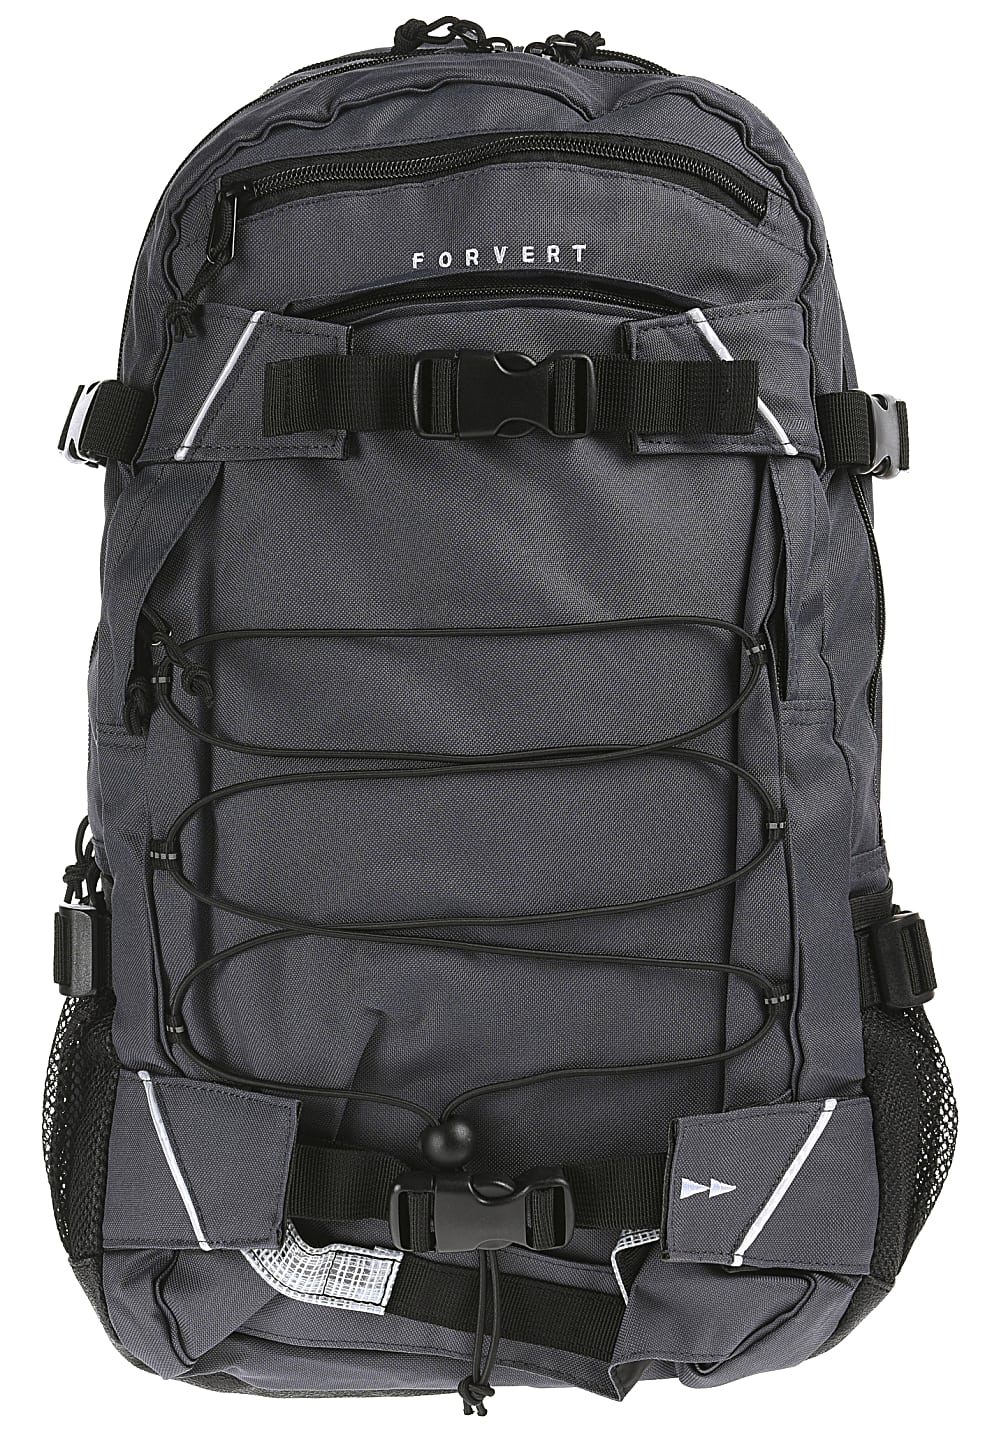 Forvert Laptop Louis Laptoprucksack - Grau